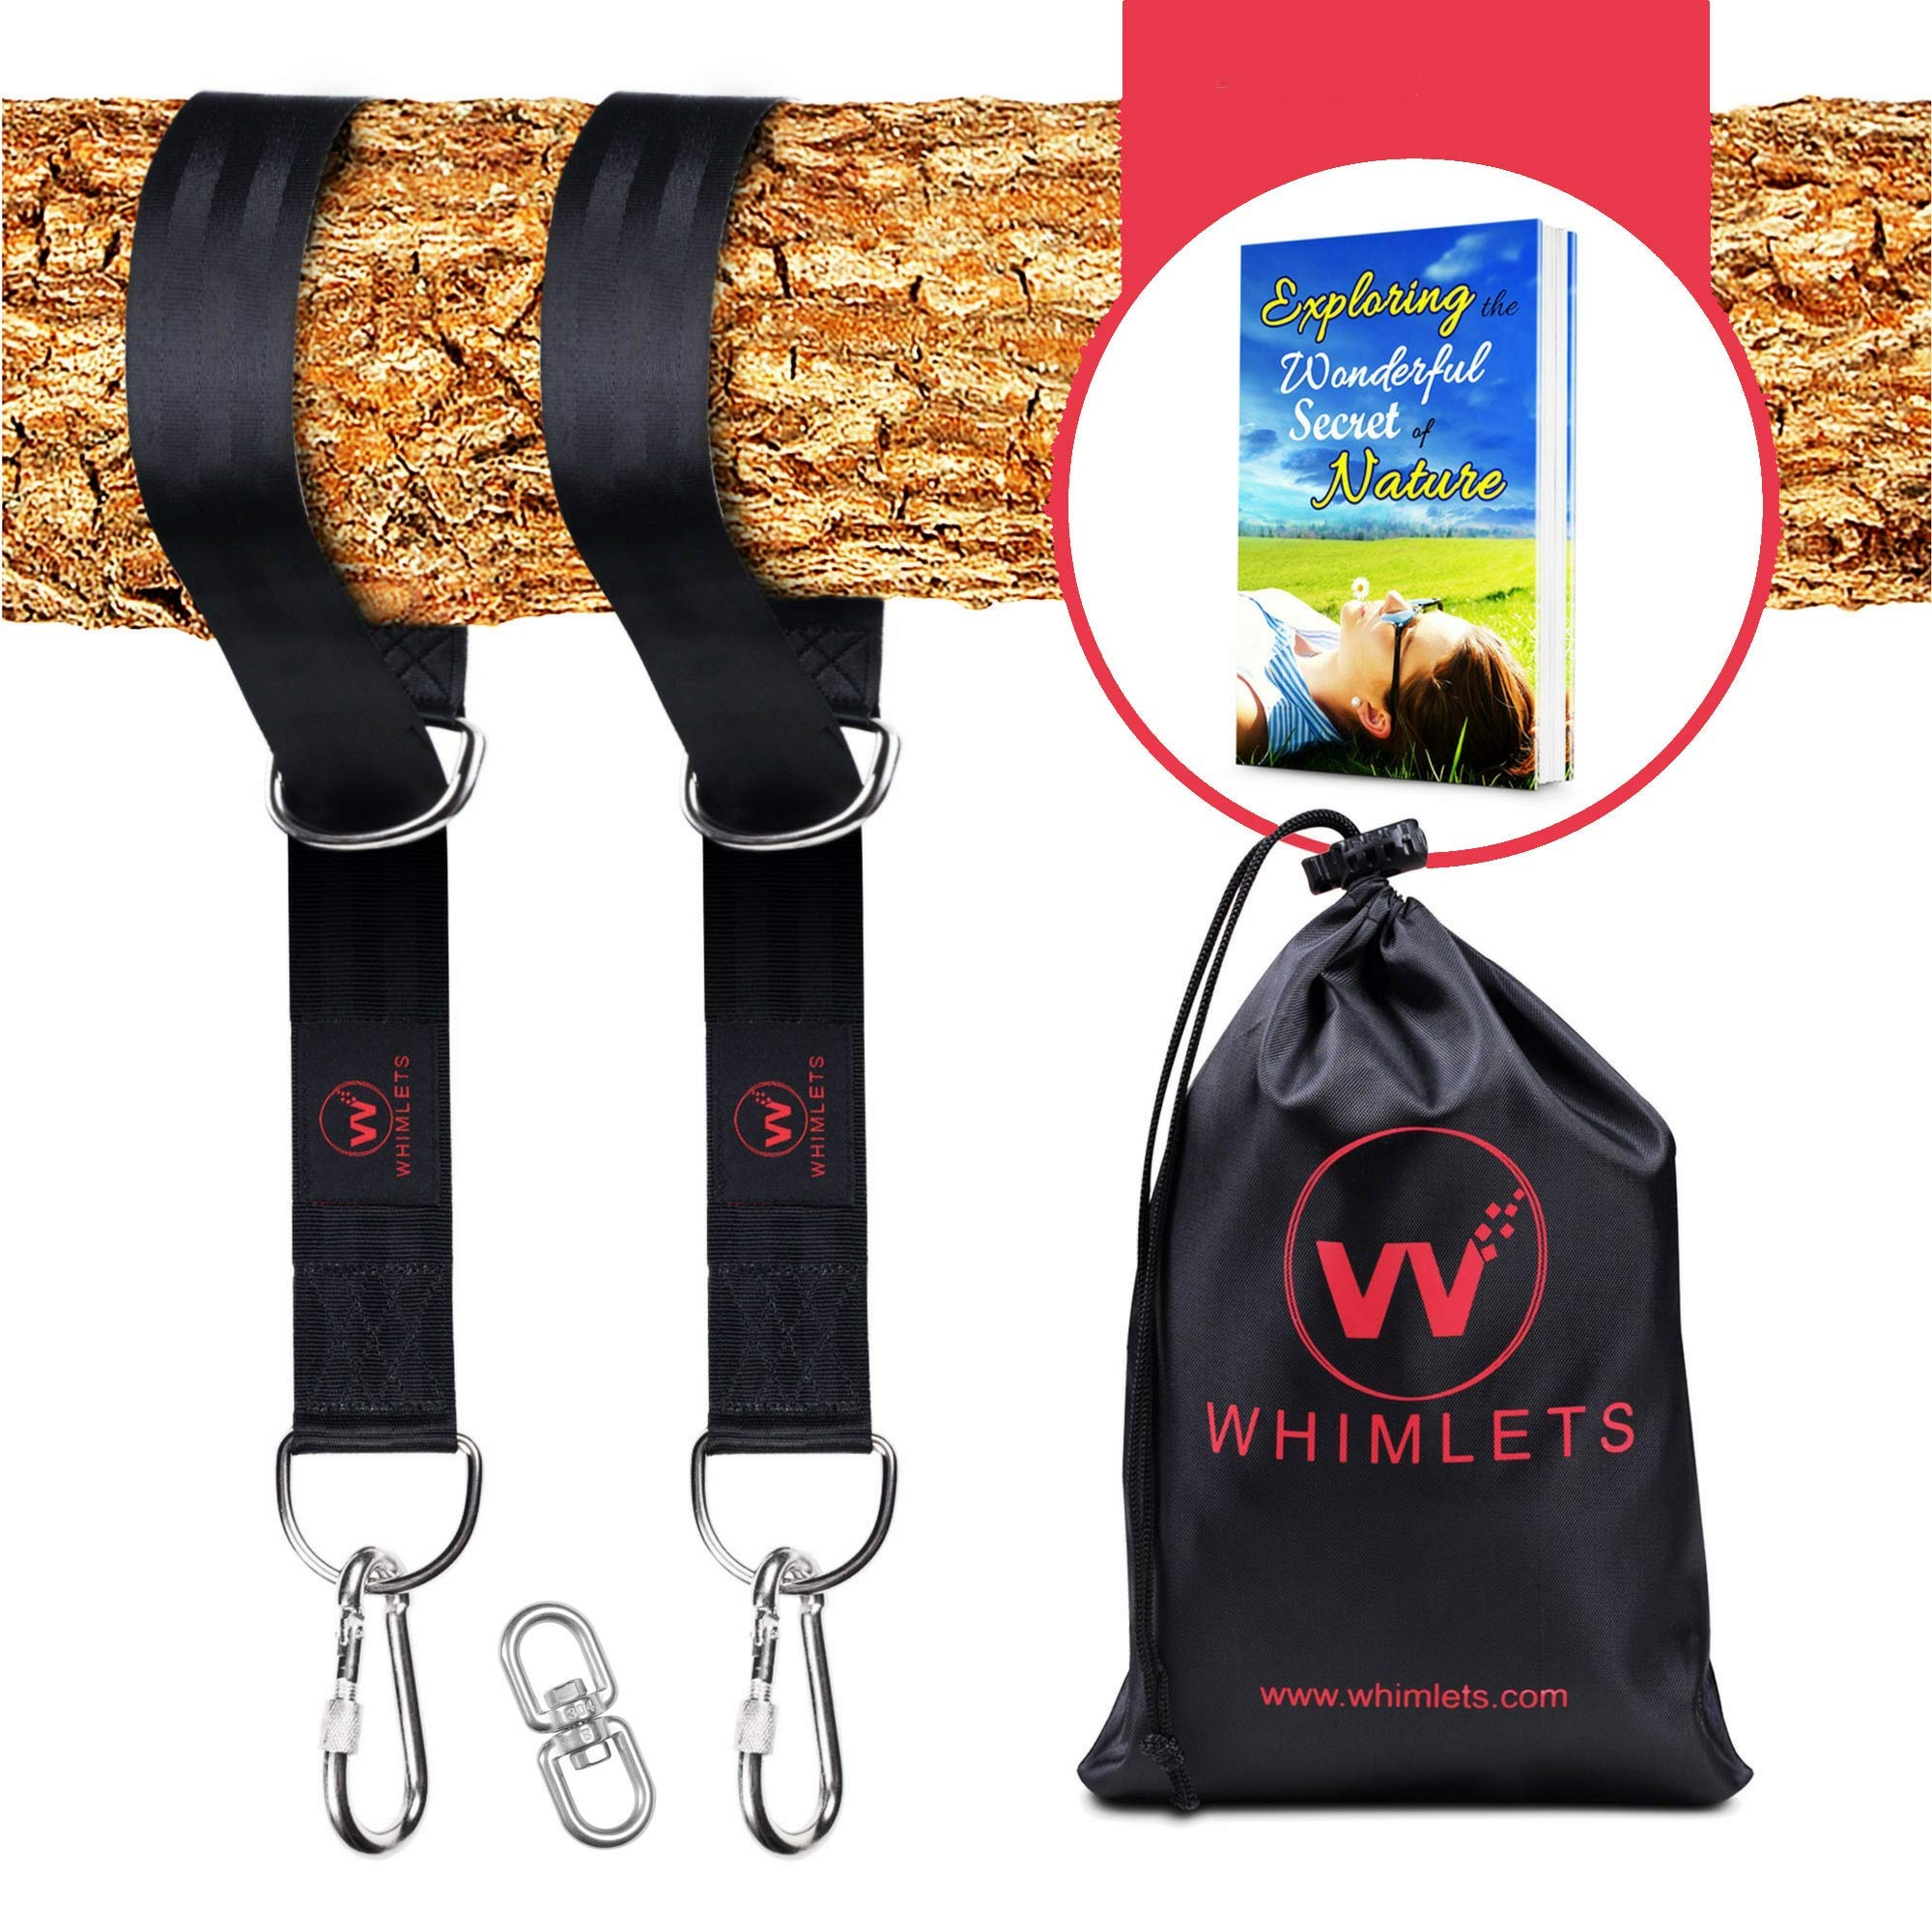 Whimlets Tree Swing Straps Hanging Kit 10ft - Two 5ft Straps Hold 2000lbs - Perfect for Swings and Hammocks – Easy and Fast Installation - with Bonus Carabiners, Stainless Steel Swivel and Free eBook